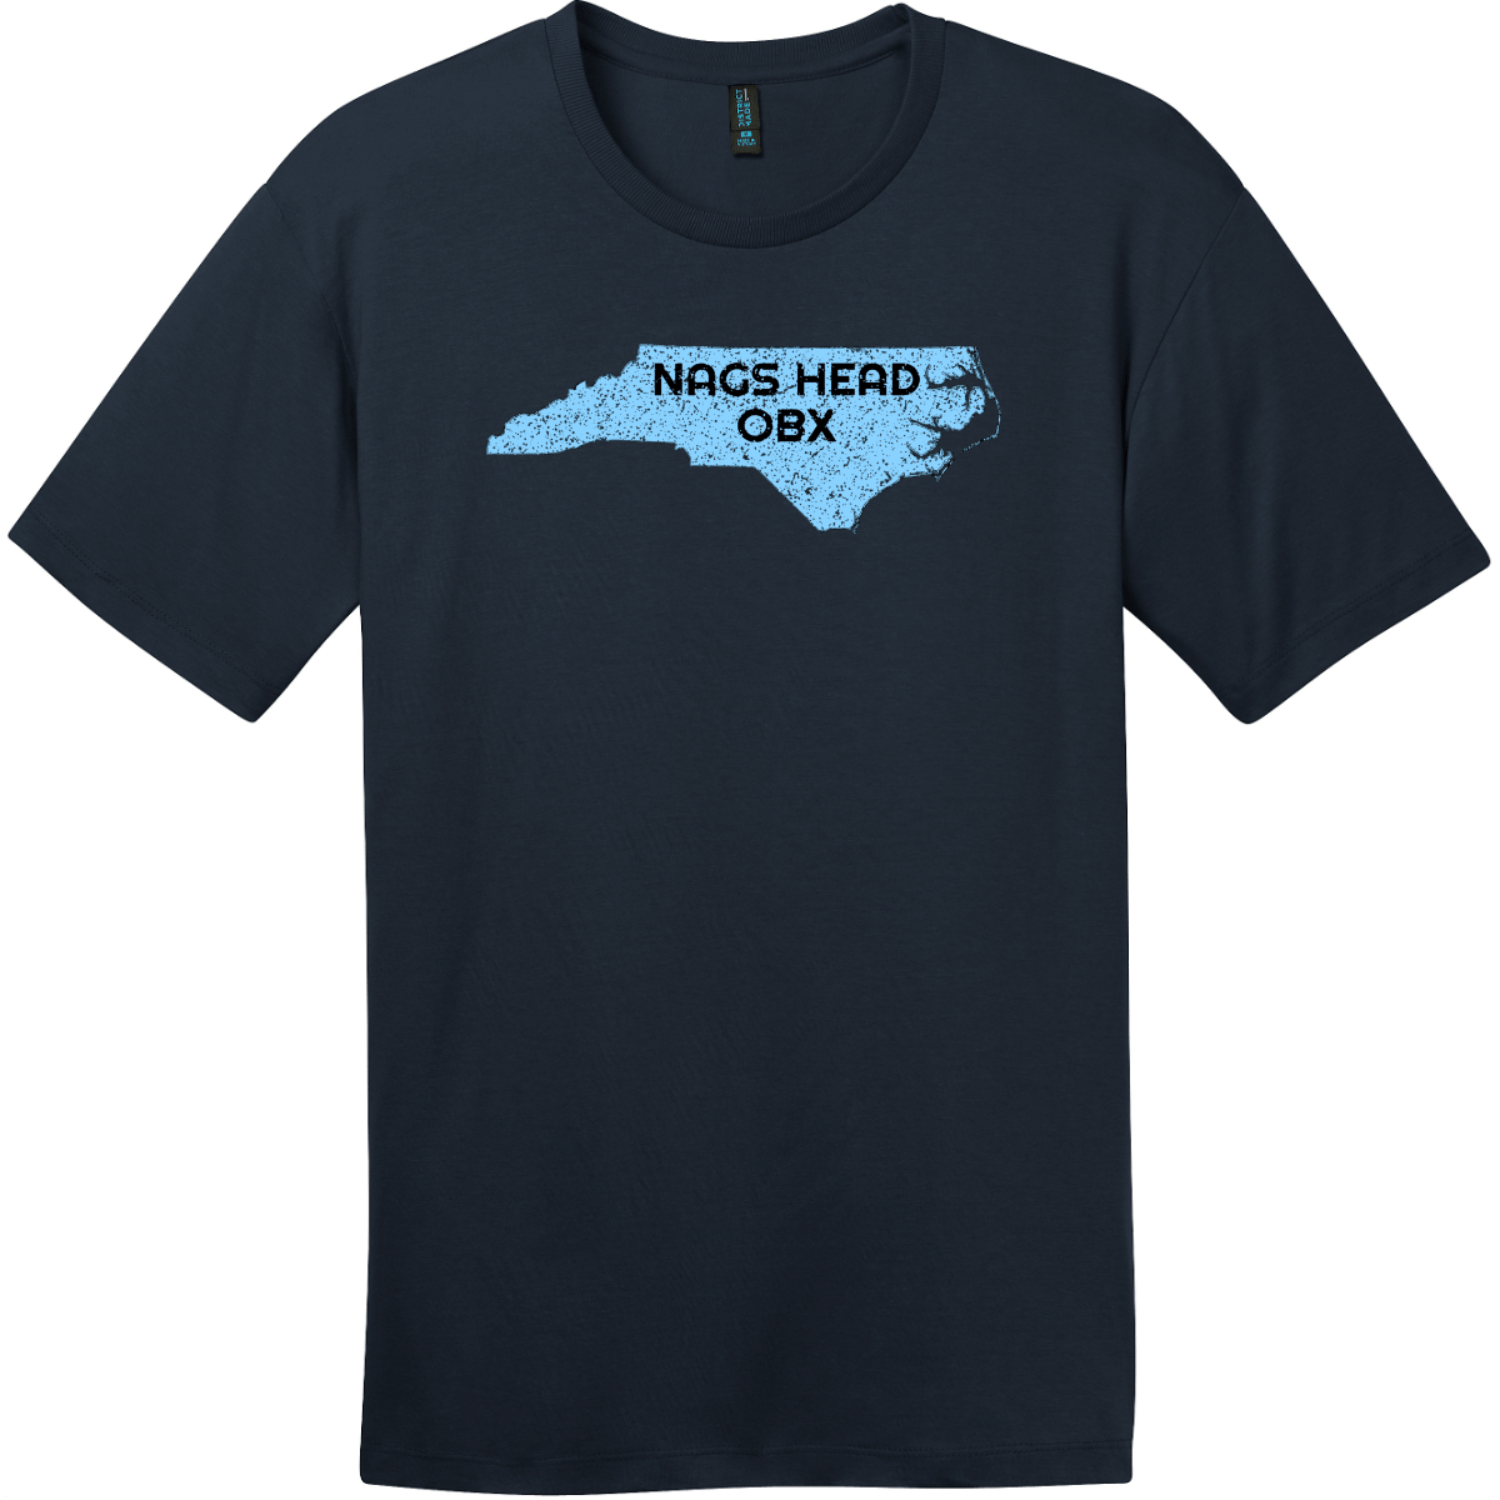 Nags Head OBX North Carolina State T-Shirt New Navy District Perfect Weight Tee DT104